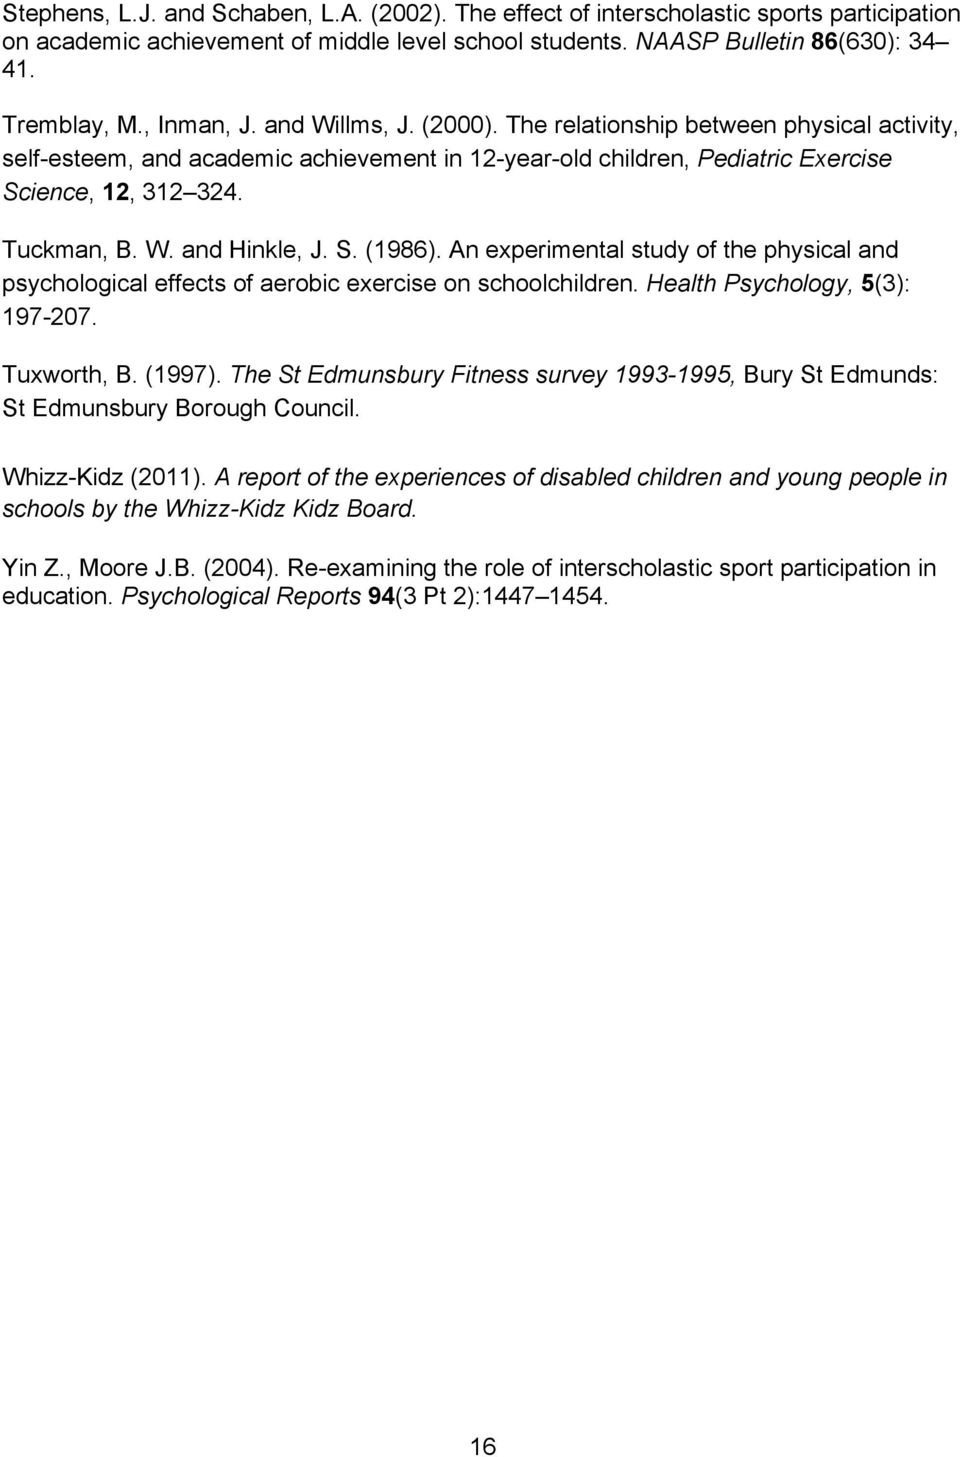 S. (1986). An experimental study of the physical and psychological effects of aerobic exercise on schoolchildren. Health Psychology, 5(3): 197-207. Tuxworth, B. (1997).